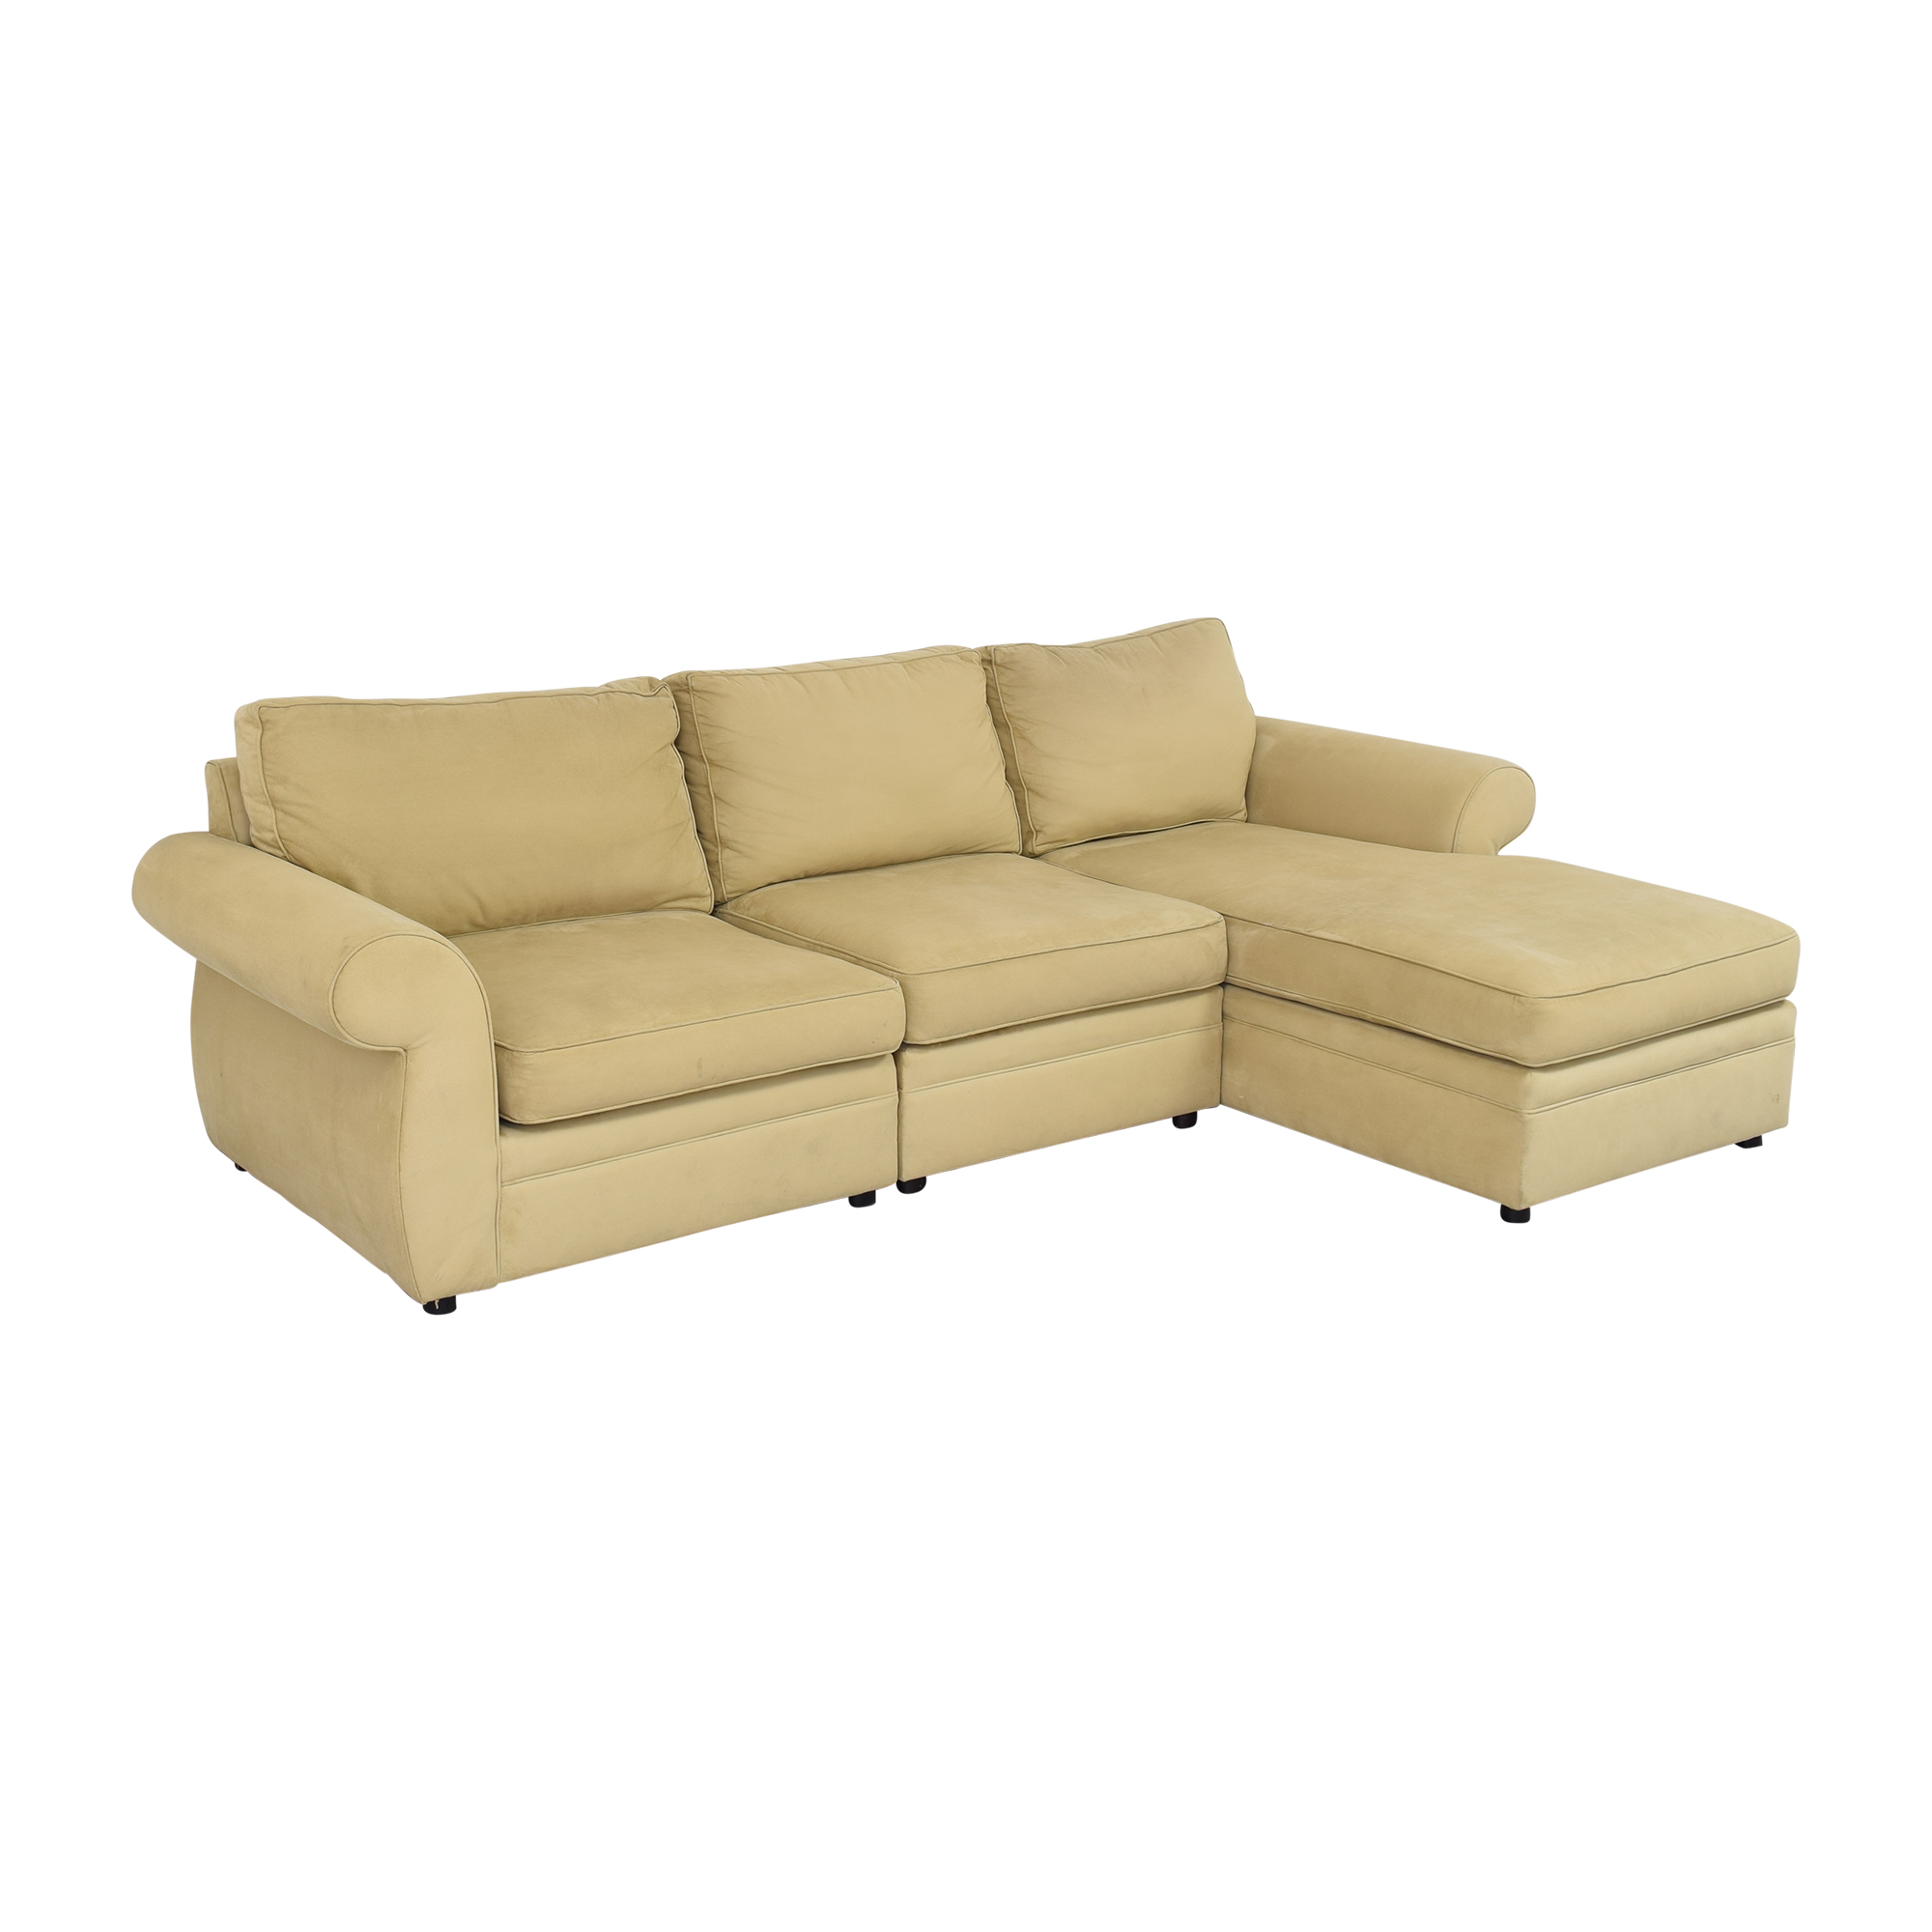 Pottery Barn Pottery Barn Chaise Sectional Sofa for sale